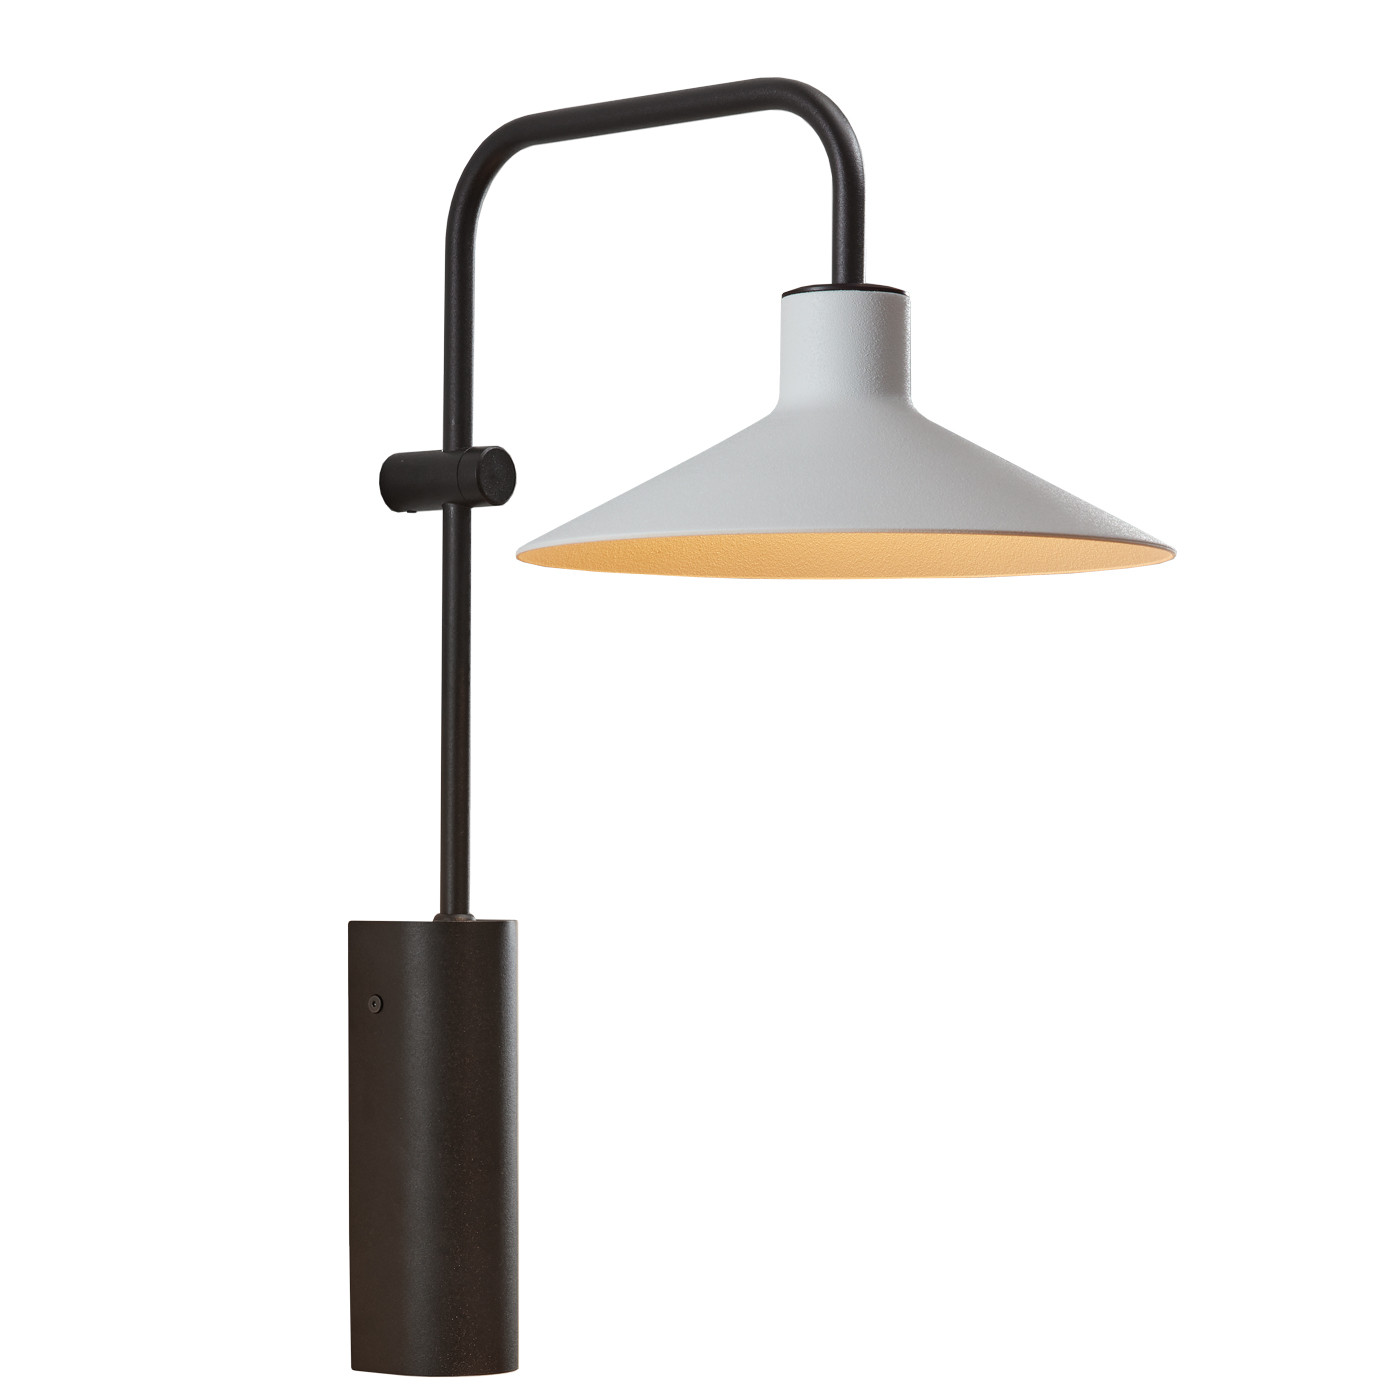 Bover Platet A/02